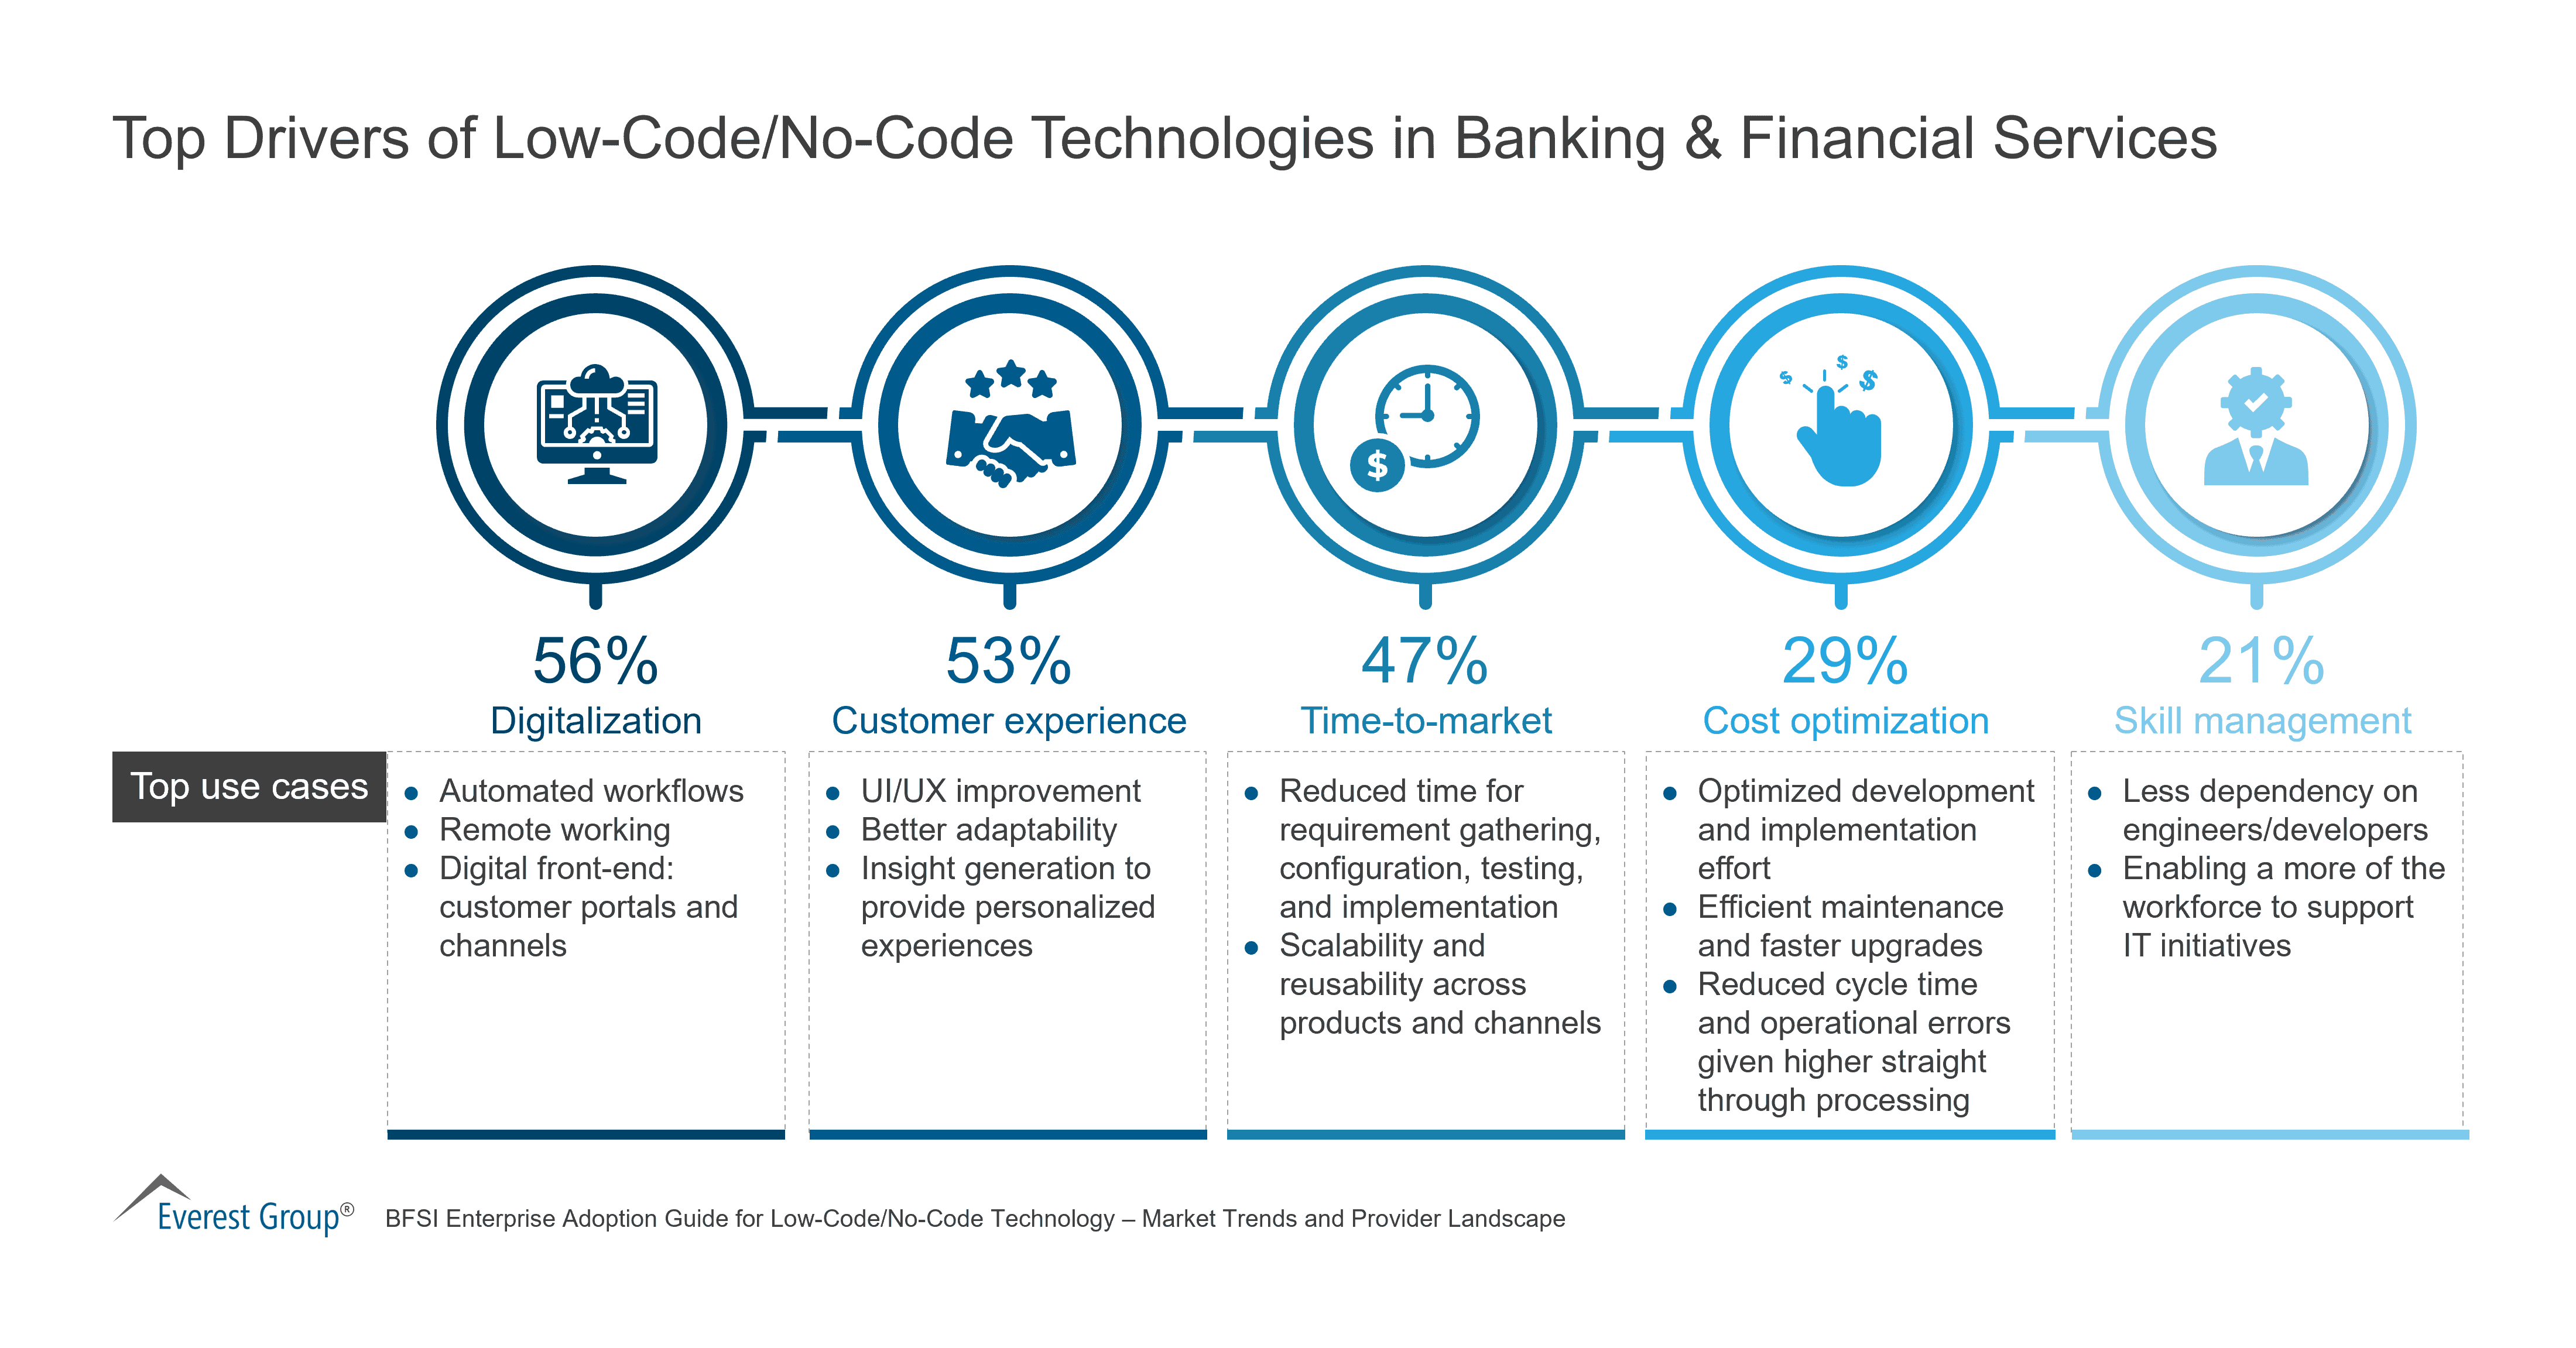 Top Drivers of Low-Code - No-Code Technologies in Banking & Financial Services